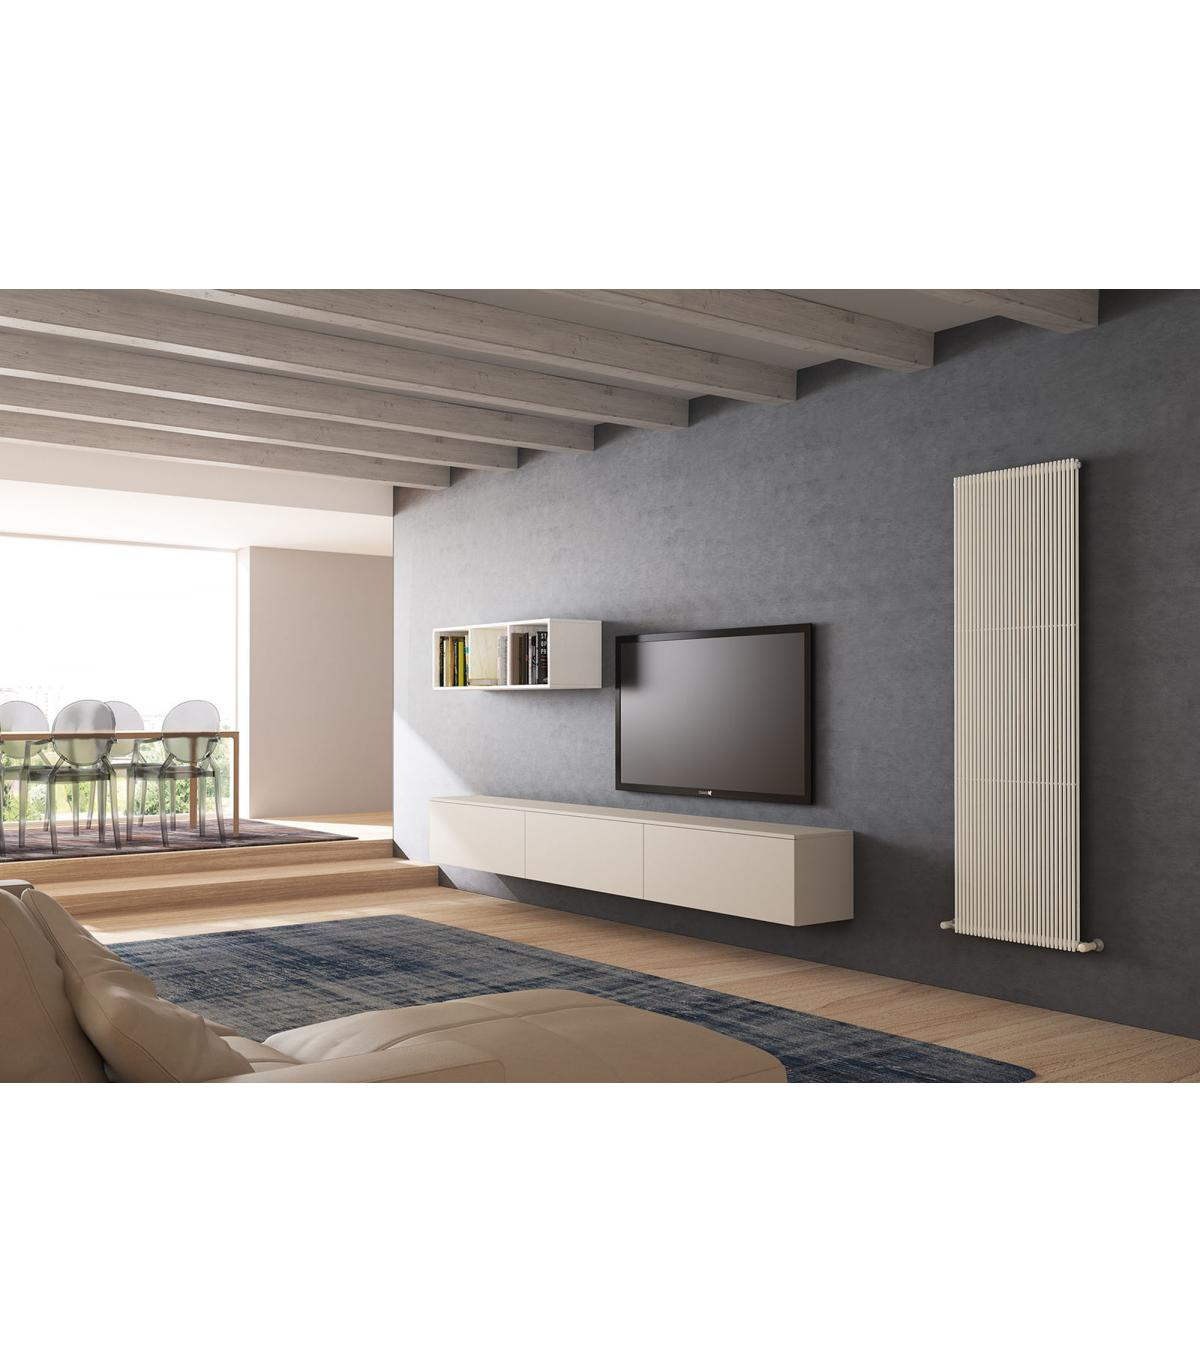 Sanitari Filo Muro Ideal Standard.Ideal Standard Finest Ideal Standard Toilet Seat Code Under